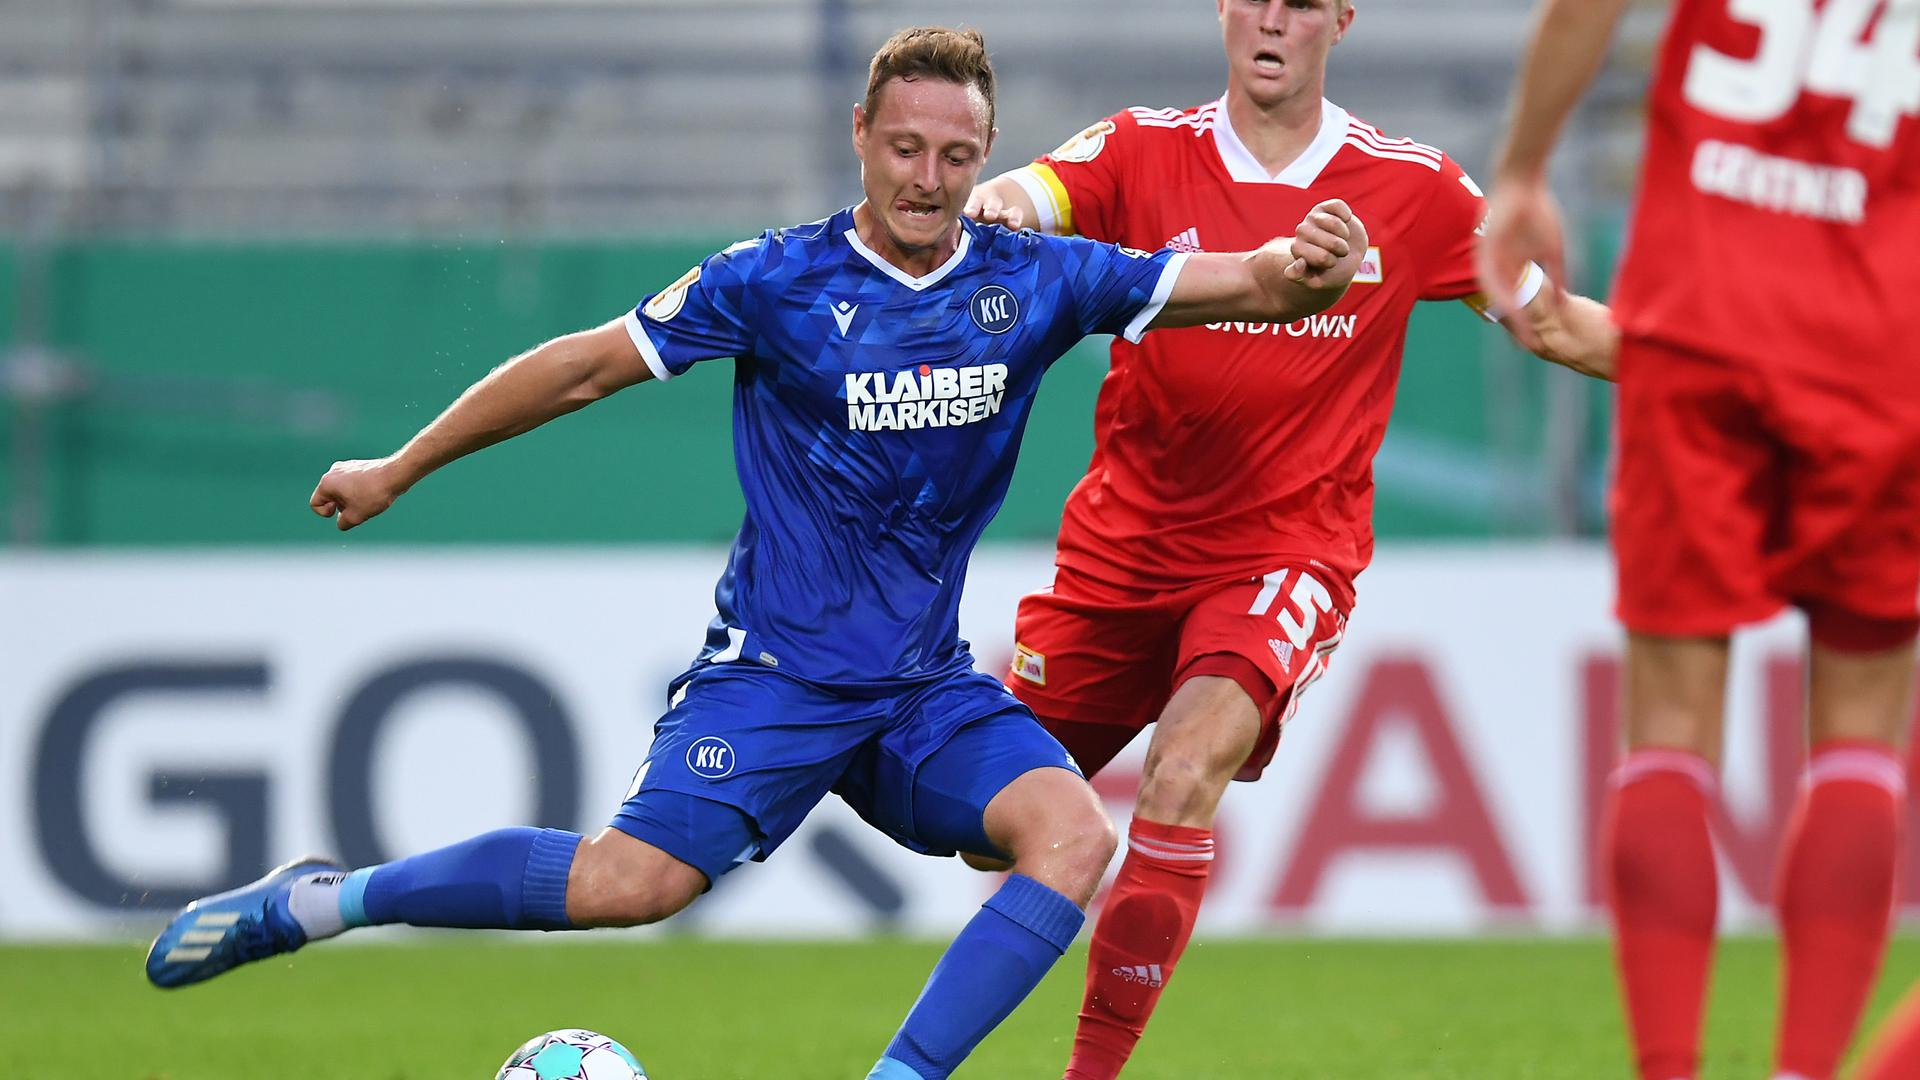 Robin Bormuth (KSC) und Marius Buelter (Union) Zweikampf, Duell zwischen   GES/ Fussball/ DFB-Pokal: Karlsruher SC - 1. FC Union Berlin, 12.09.2020  Football / Soccer: DFB-Cup: KSC vs Union Berlin, Location, September 12, 2020